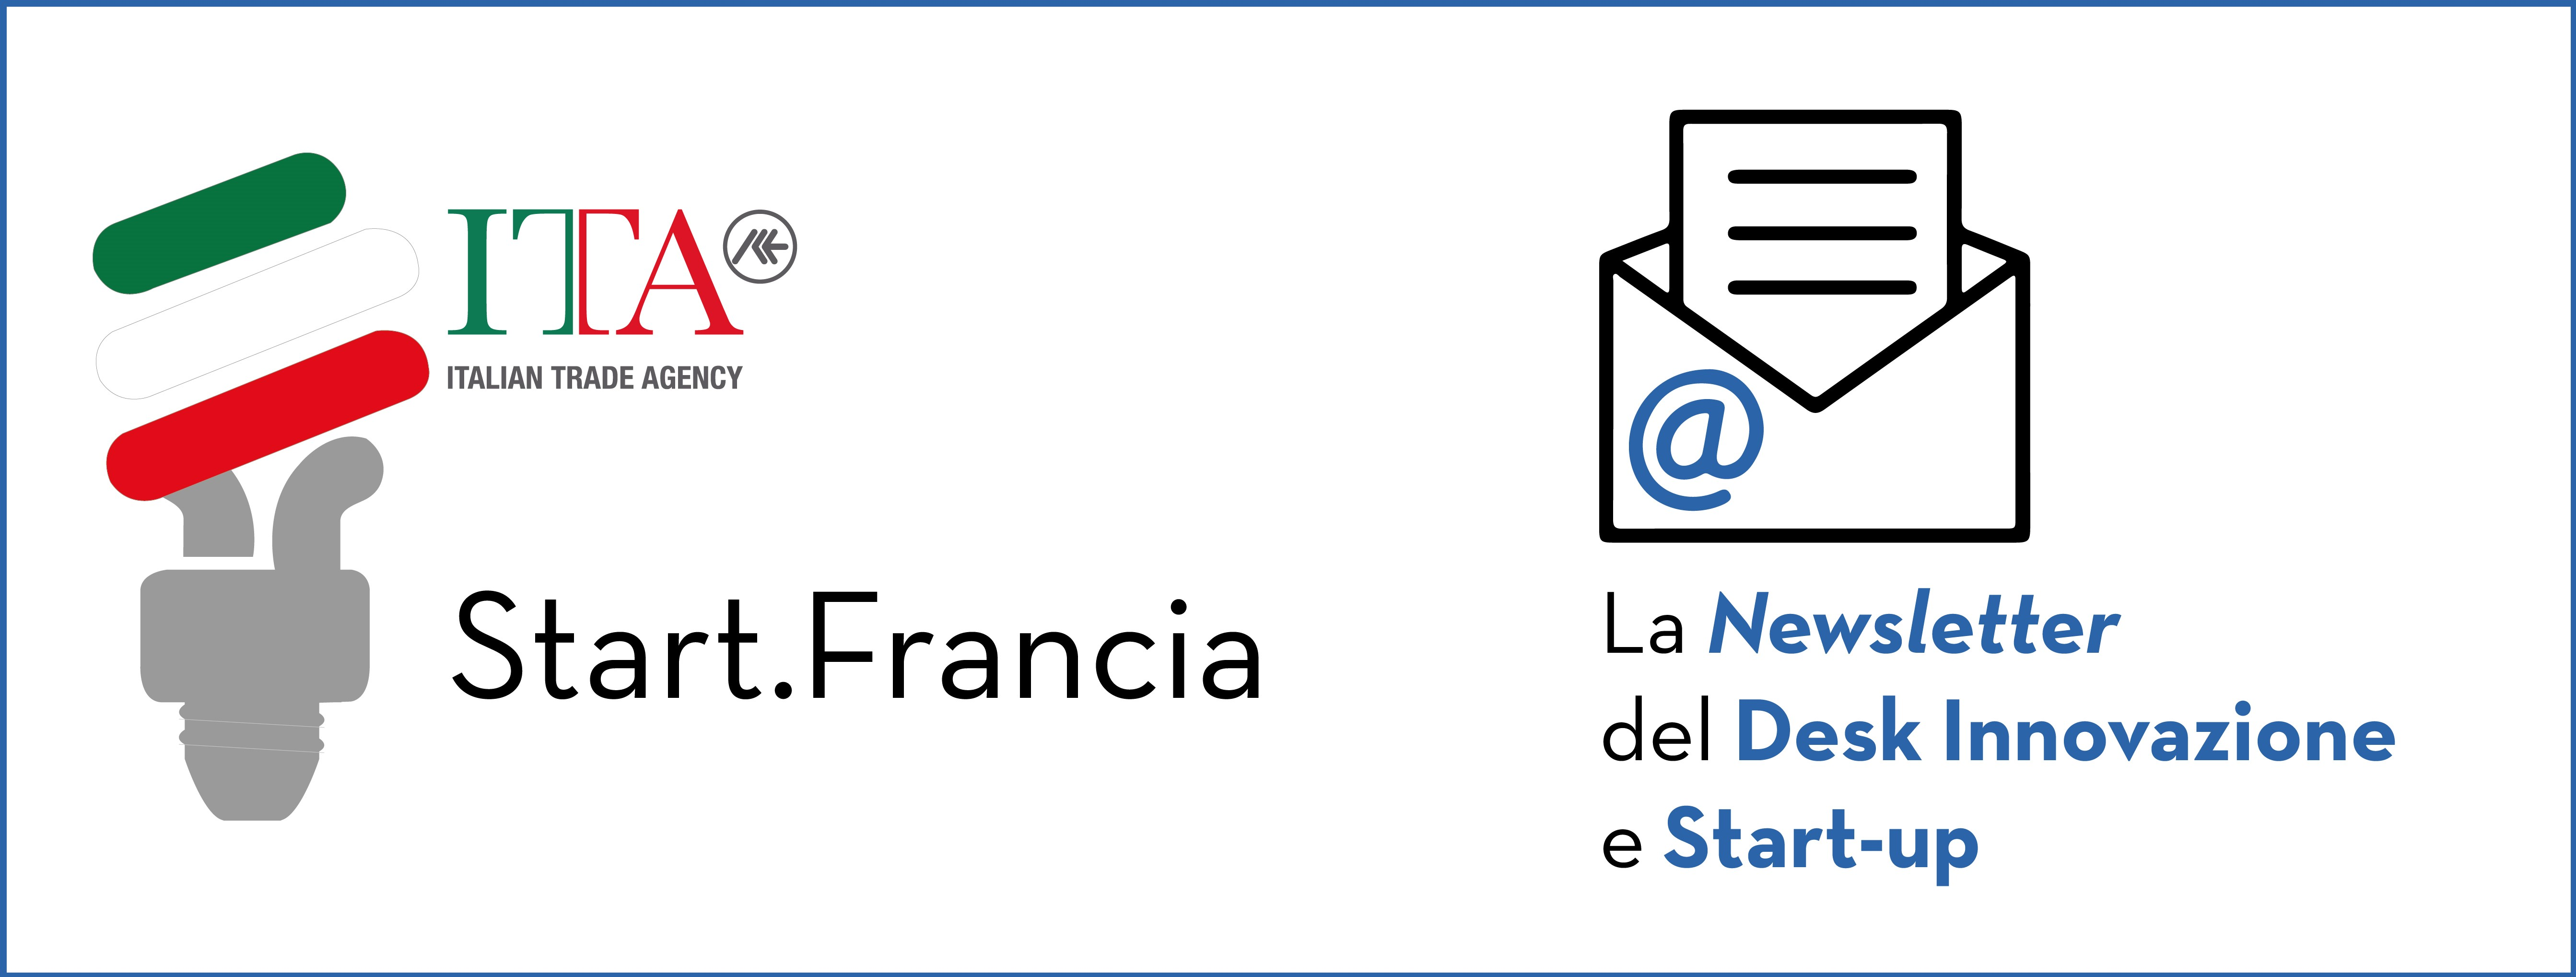 Desk Innovazione e Start-up